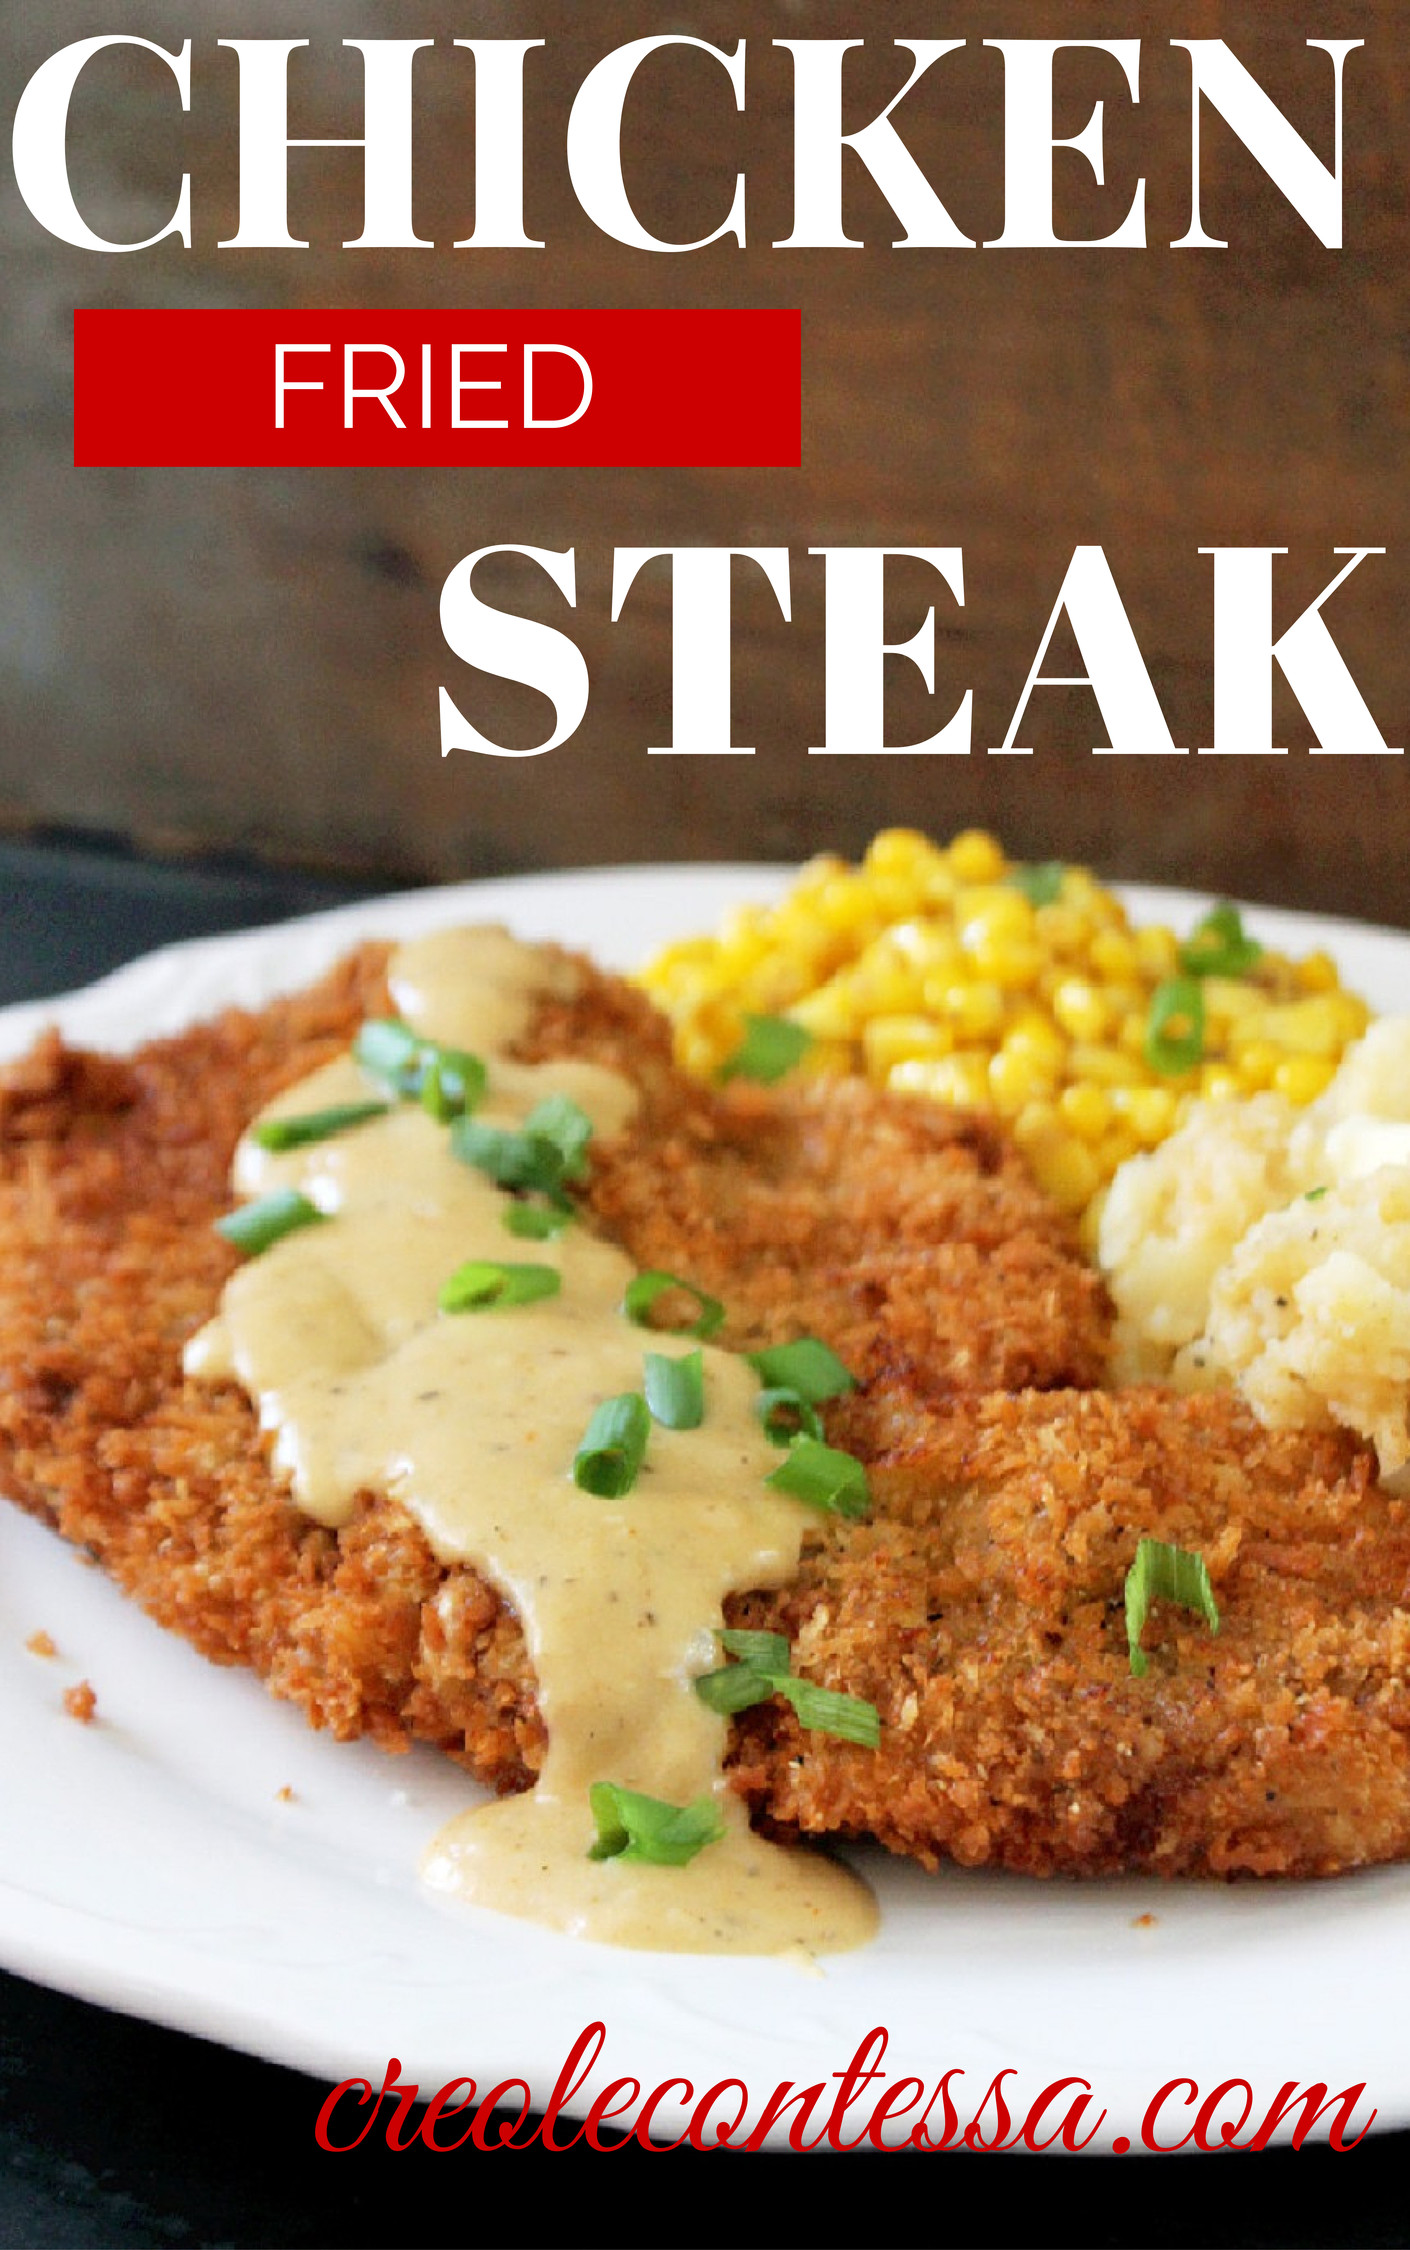 Chicken Fried Steak with Creole Corn & Creamy Mashed Potatoes-Creole ...